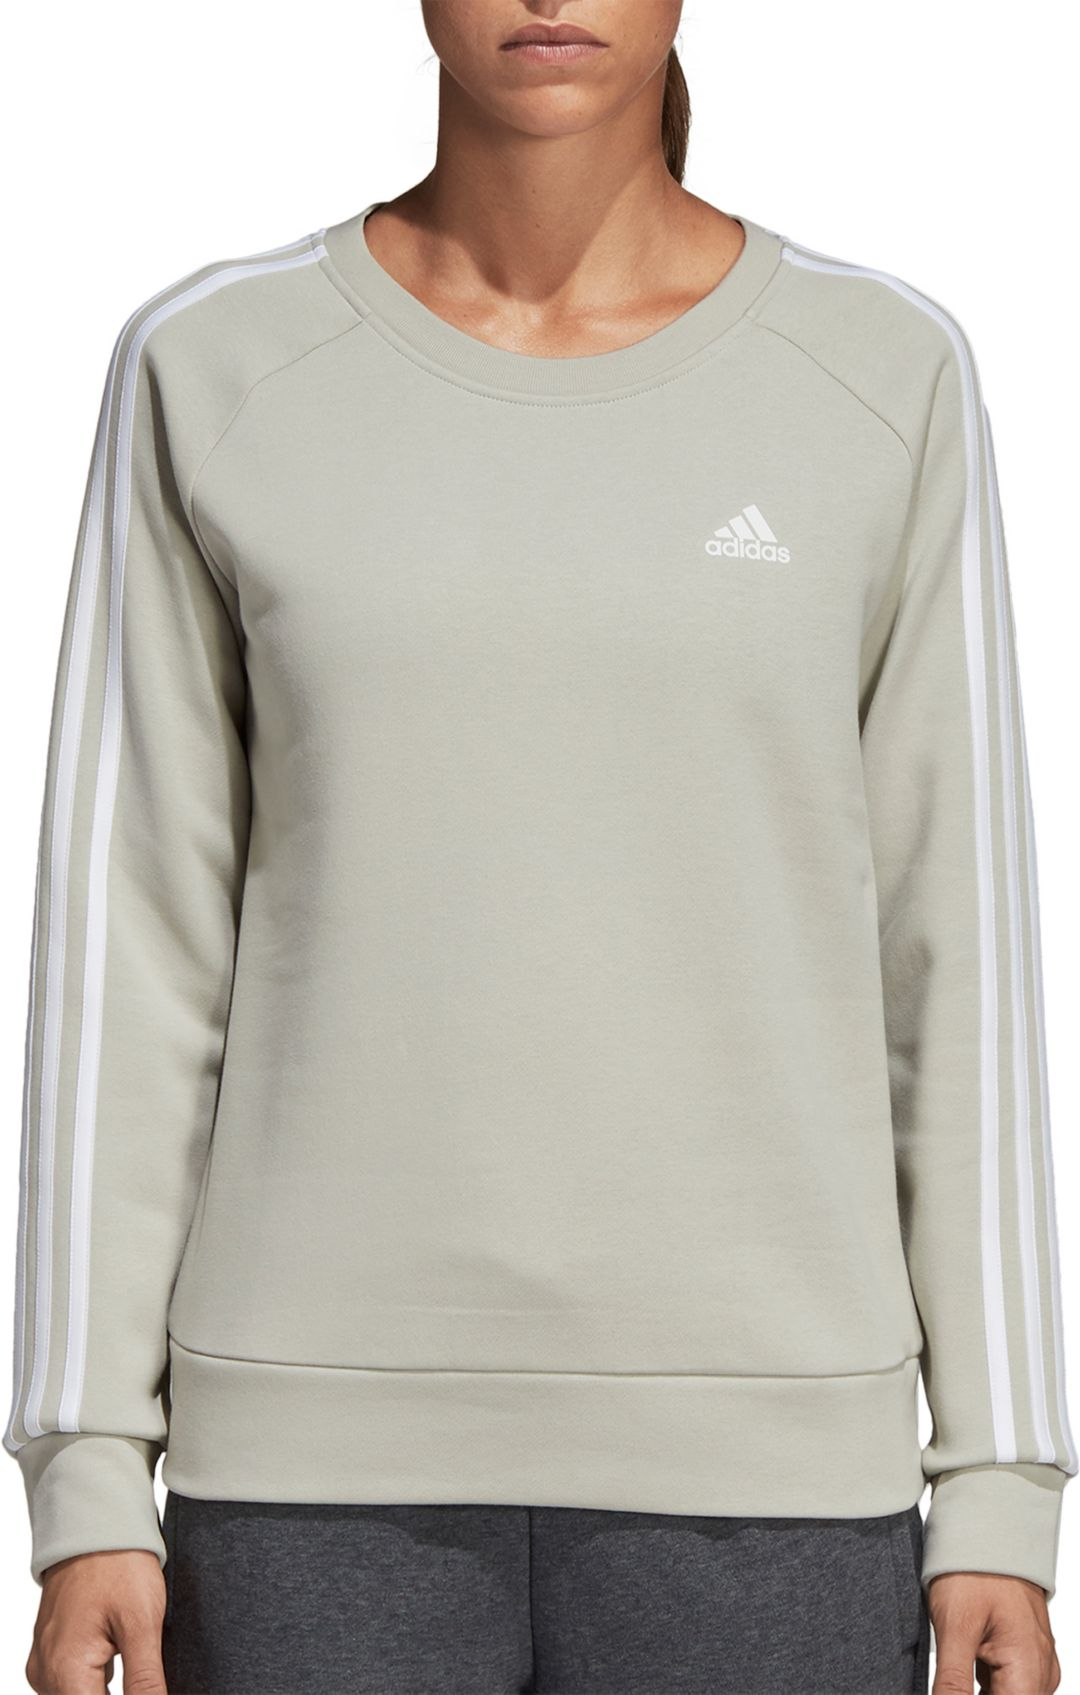 6843ebdb2 adidas Women's Essentials 3-Stripes Crewneck Sweatshirt. noImageFound.  Previous